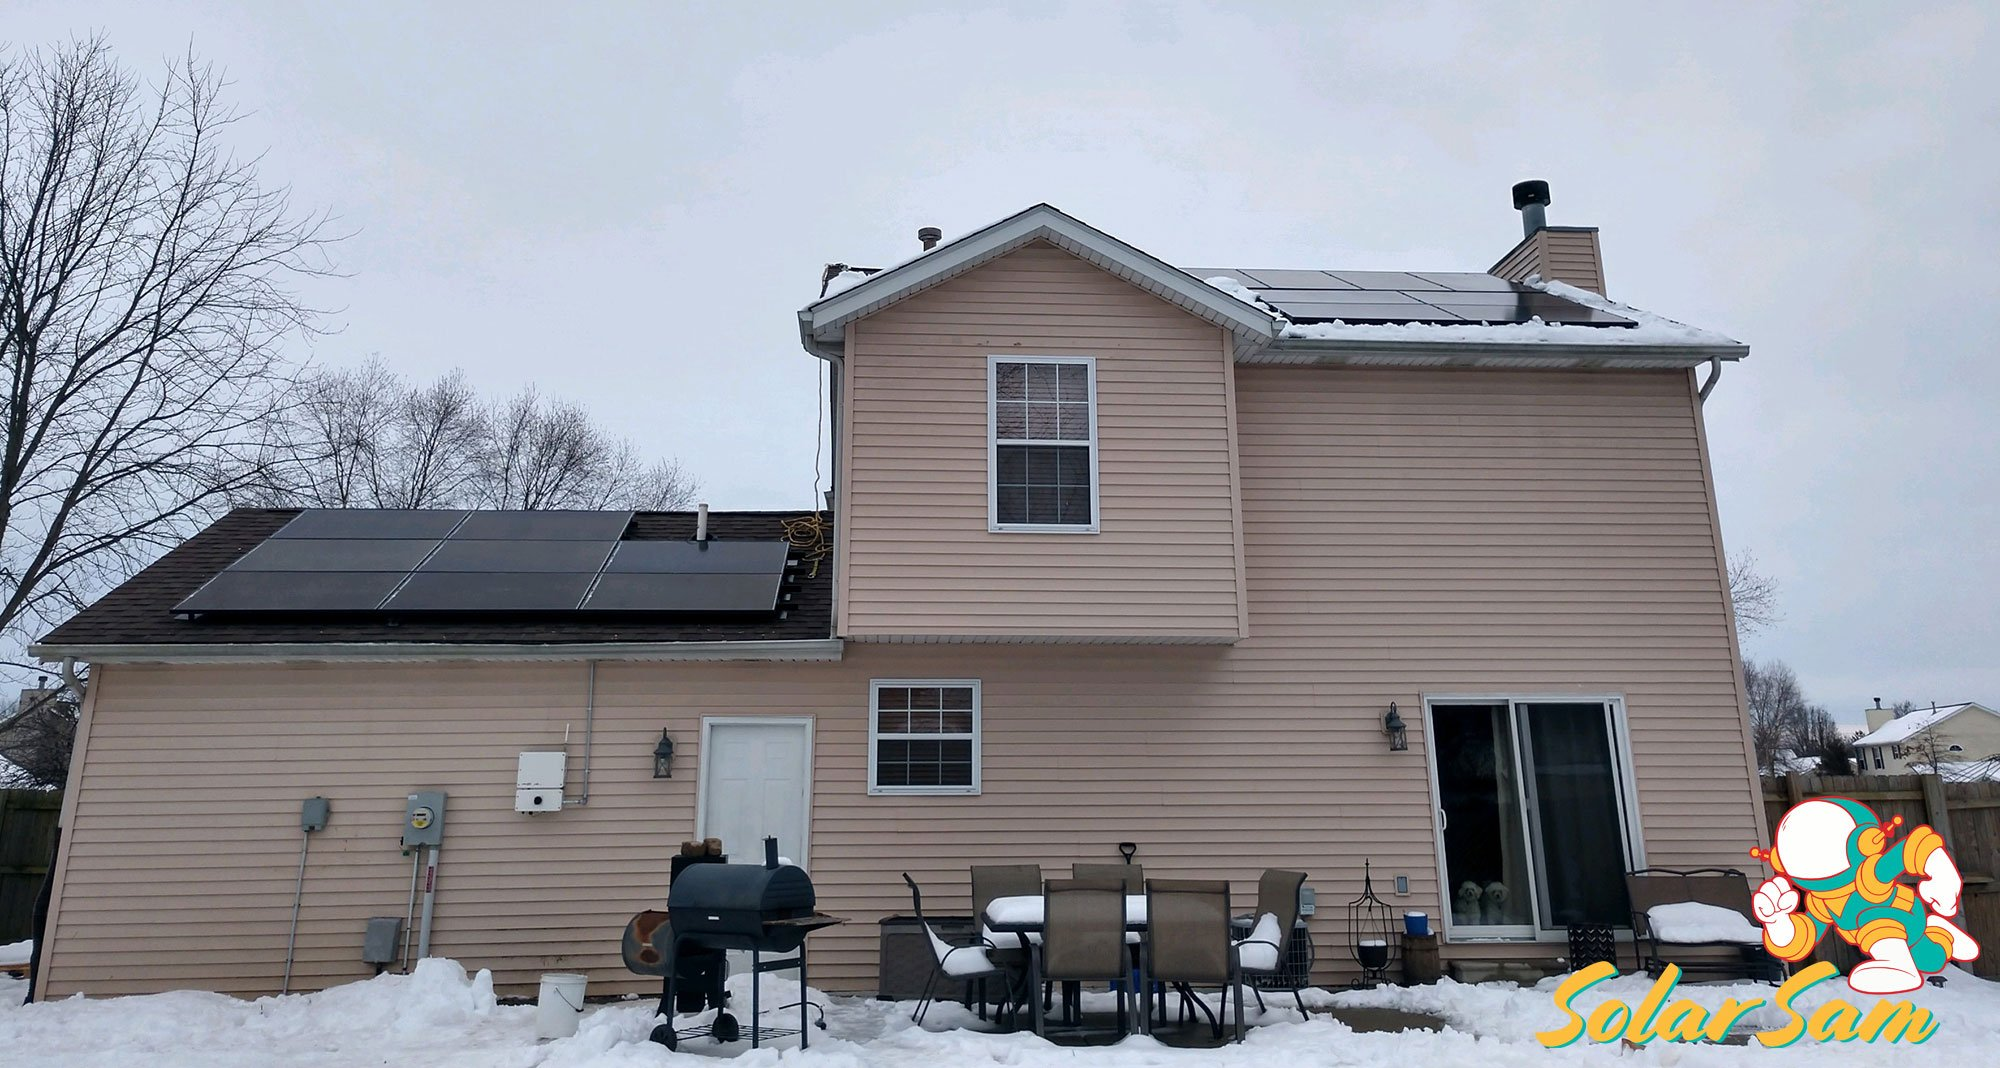 Rooftop Home Solar Panel Installation Belleville Illinois Roof Mounted House Panels Solar Sam Professional Installation Silfab Panels Solar Edge Inverter ATT Cellular Monitoring